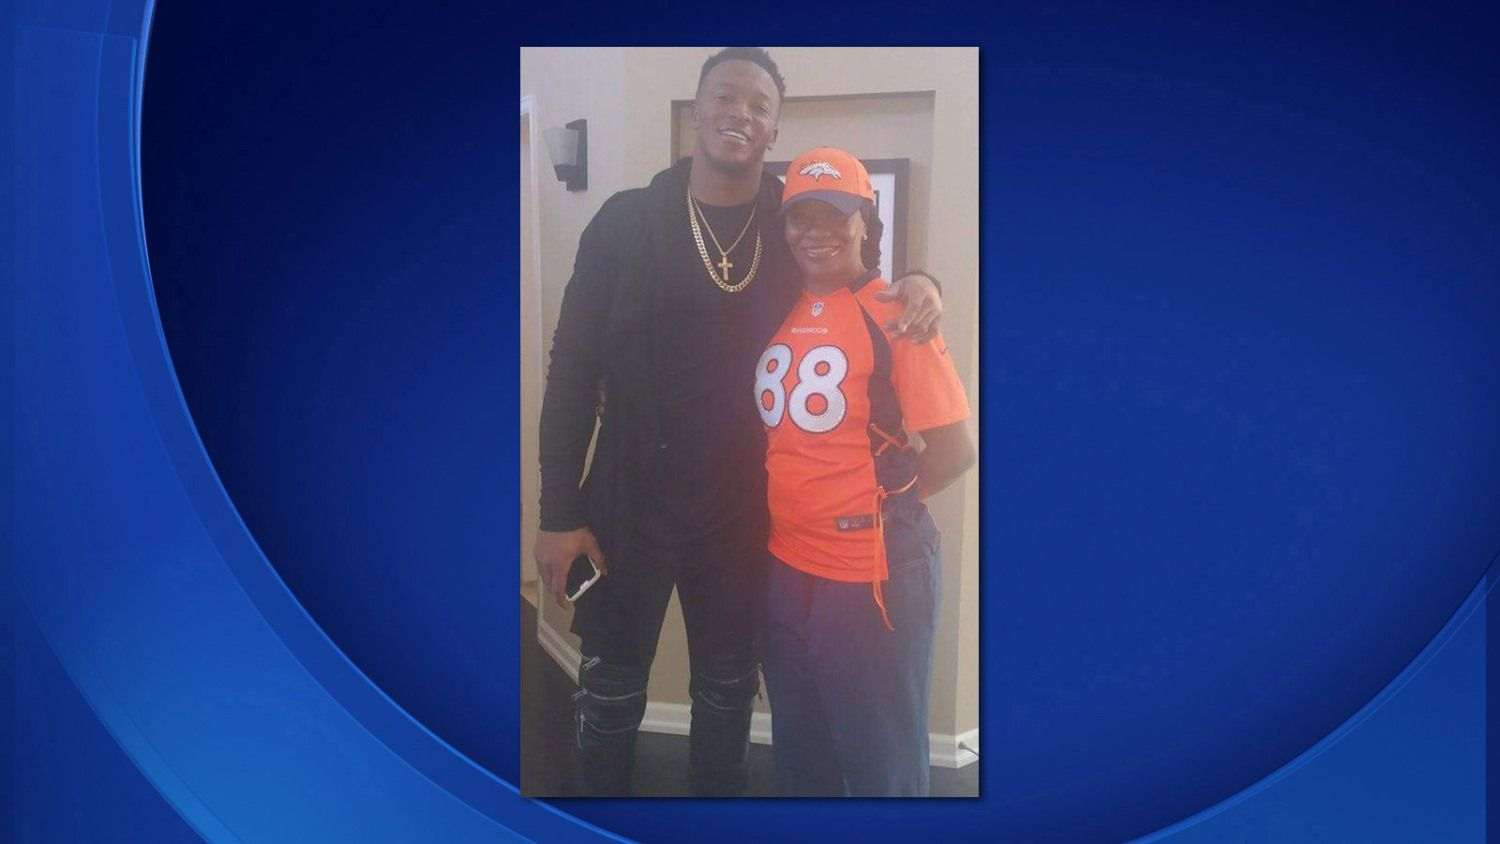 http://heysport.biz/ Demaryius Thomas's mom is sporting her son's jersey at Sunday's AFC Divisional Playoff game in Denver. It's the first time Katina Smith has seen her son play professional football.